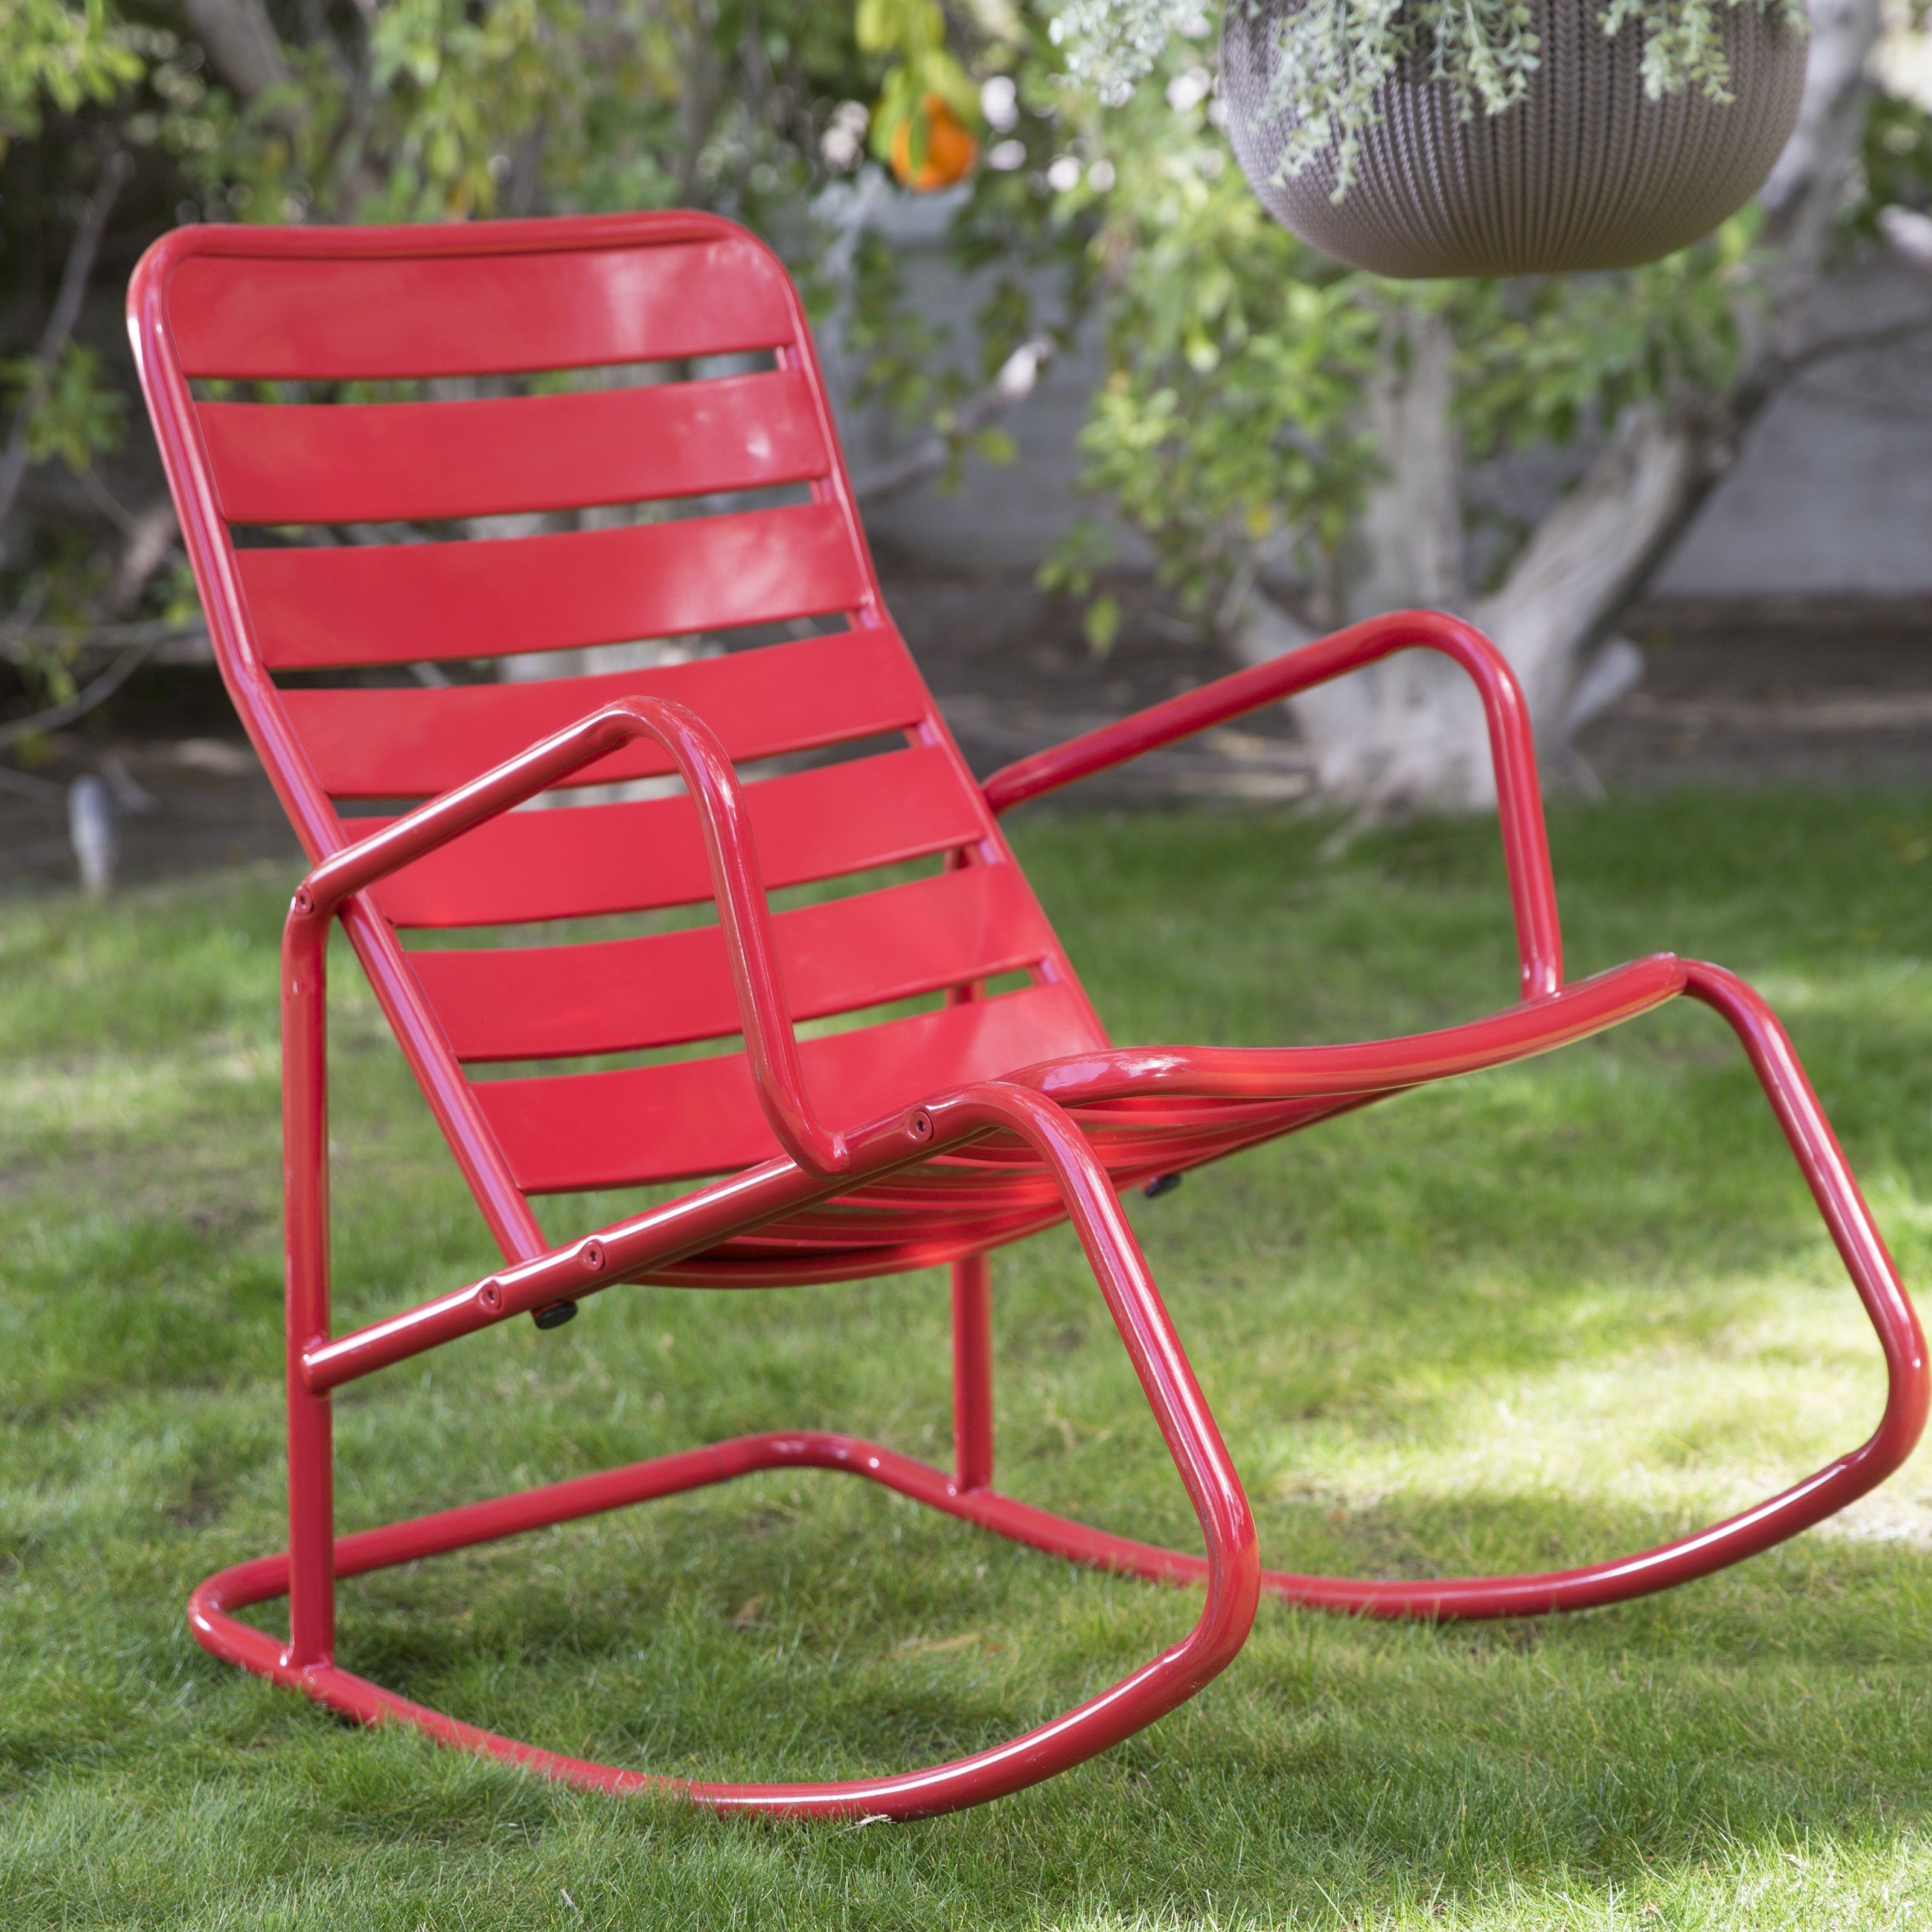 Belham Living Adley Outdoor Metal Slat Rocking Chair – Contemporary In Retro Outdoor Rocking Chairs (#1 of 15)